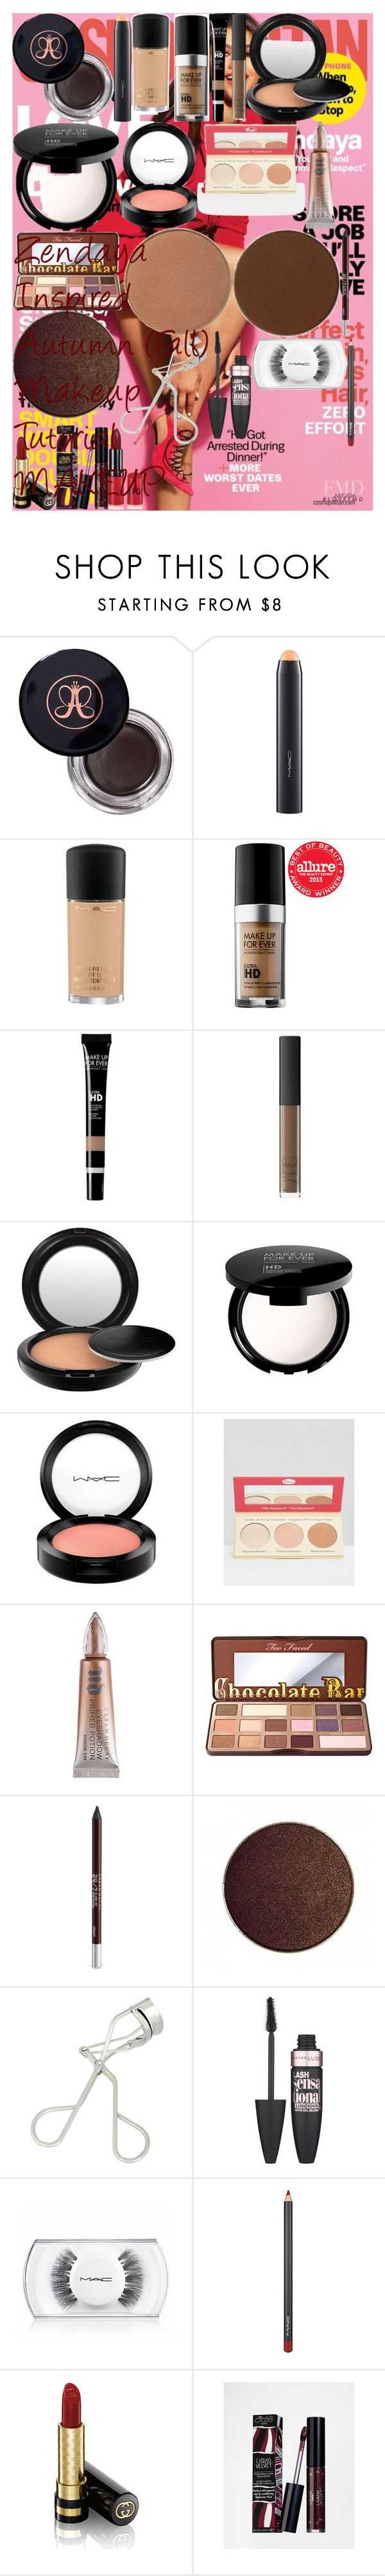 """""""Zendaya Inspired Autumn (Fall) Makeup Tutorial   MAKEUP"""" by oroartye-1 on Polyvore featuring beauty, Anastasia Beverly Hills, MAC Cosmetics, MAKE UP FOR EVER, NARS Cosmetics, TheBalm, Urban Decay, Too Faced Cosmetics, shu uemura and Maybelline"""